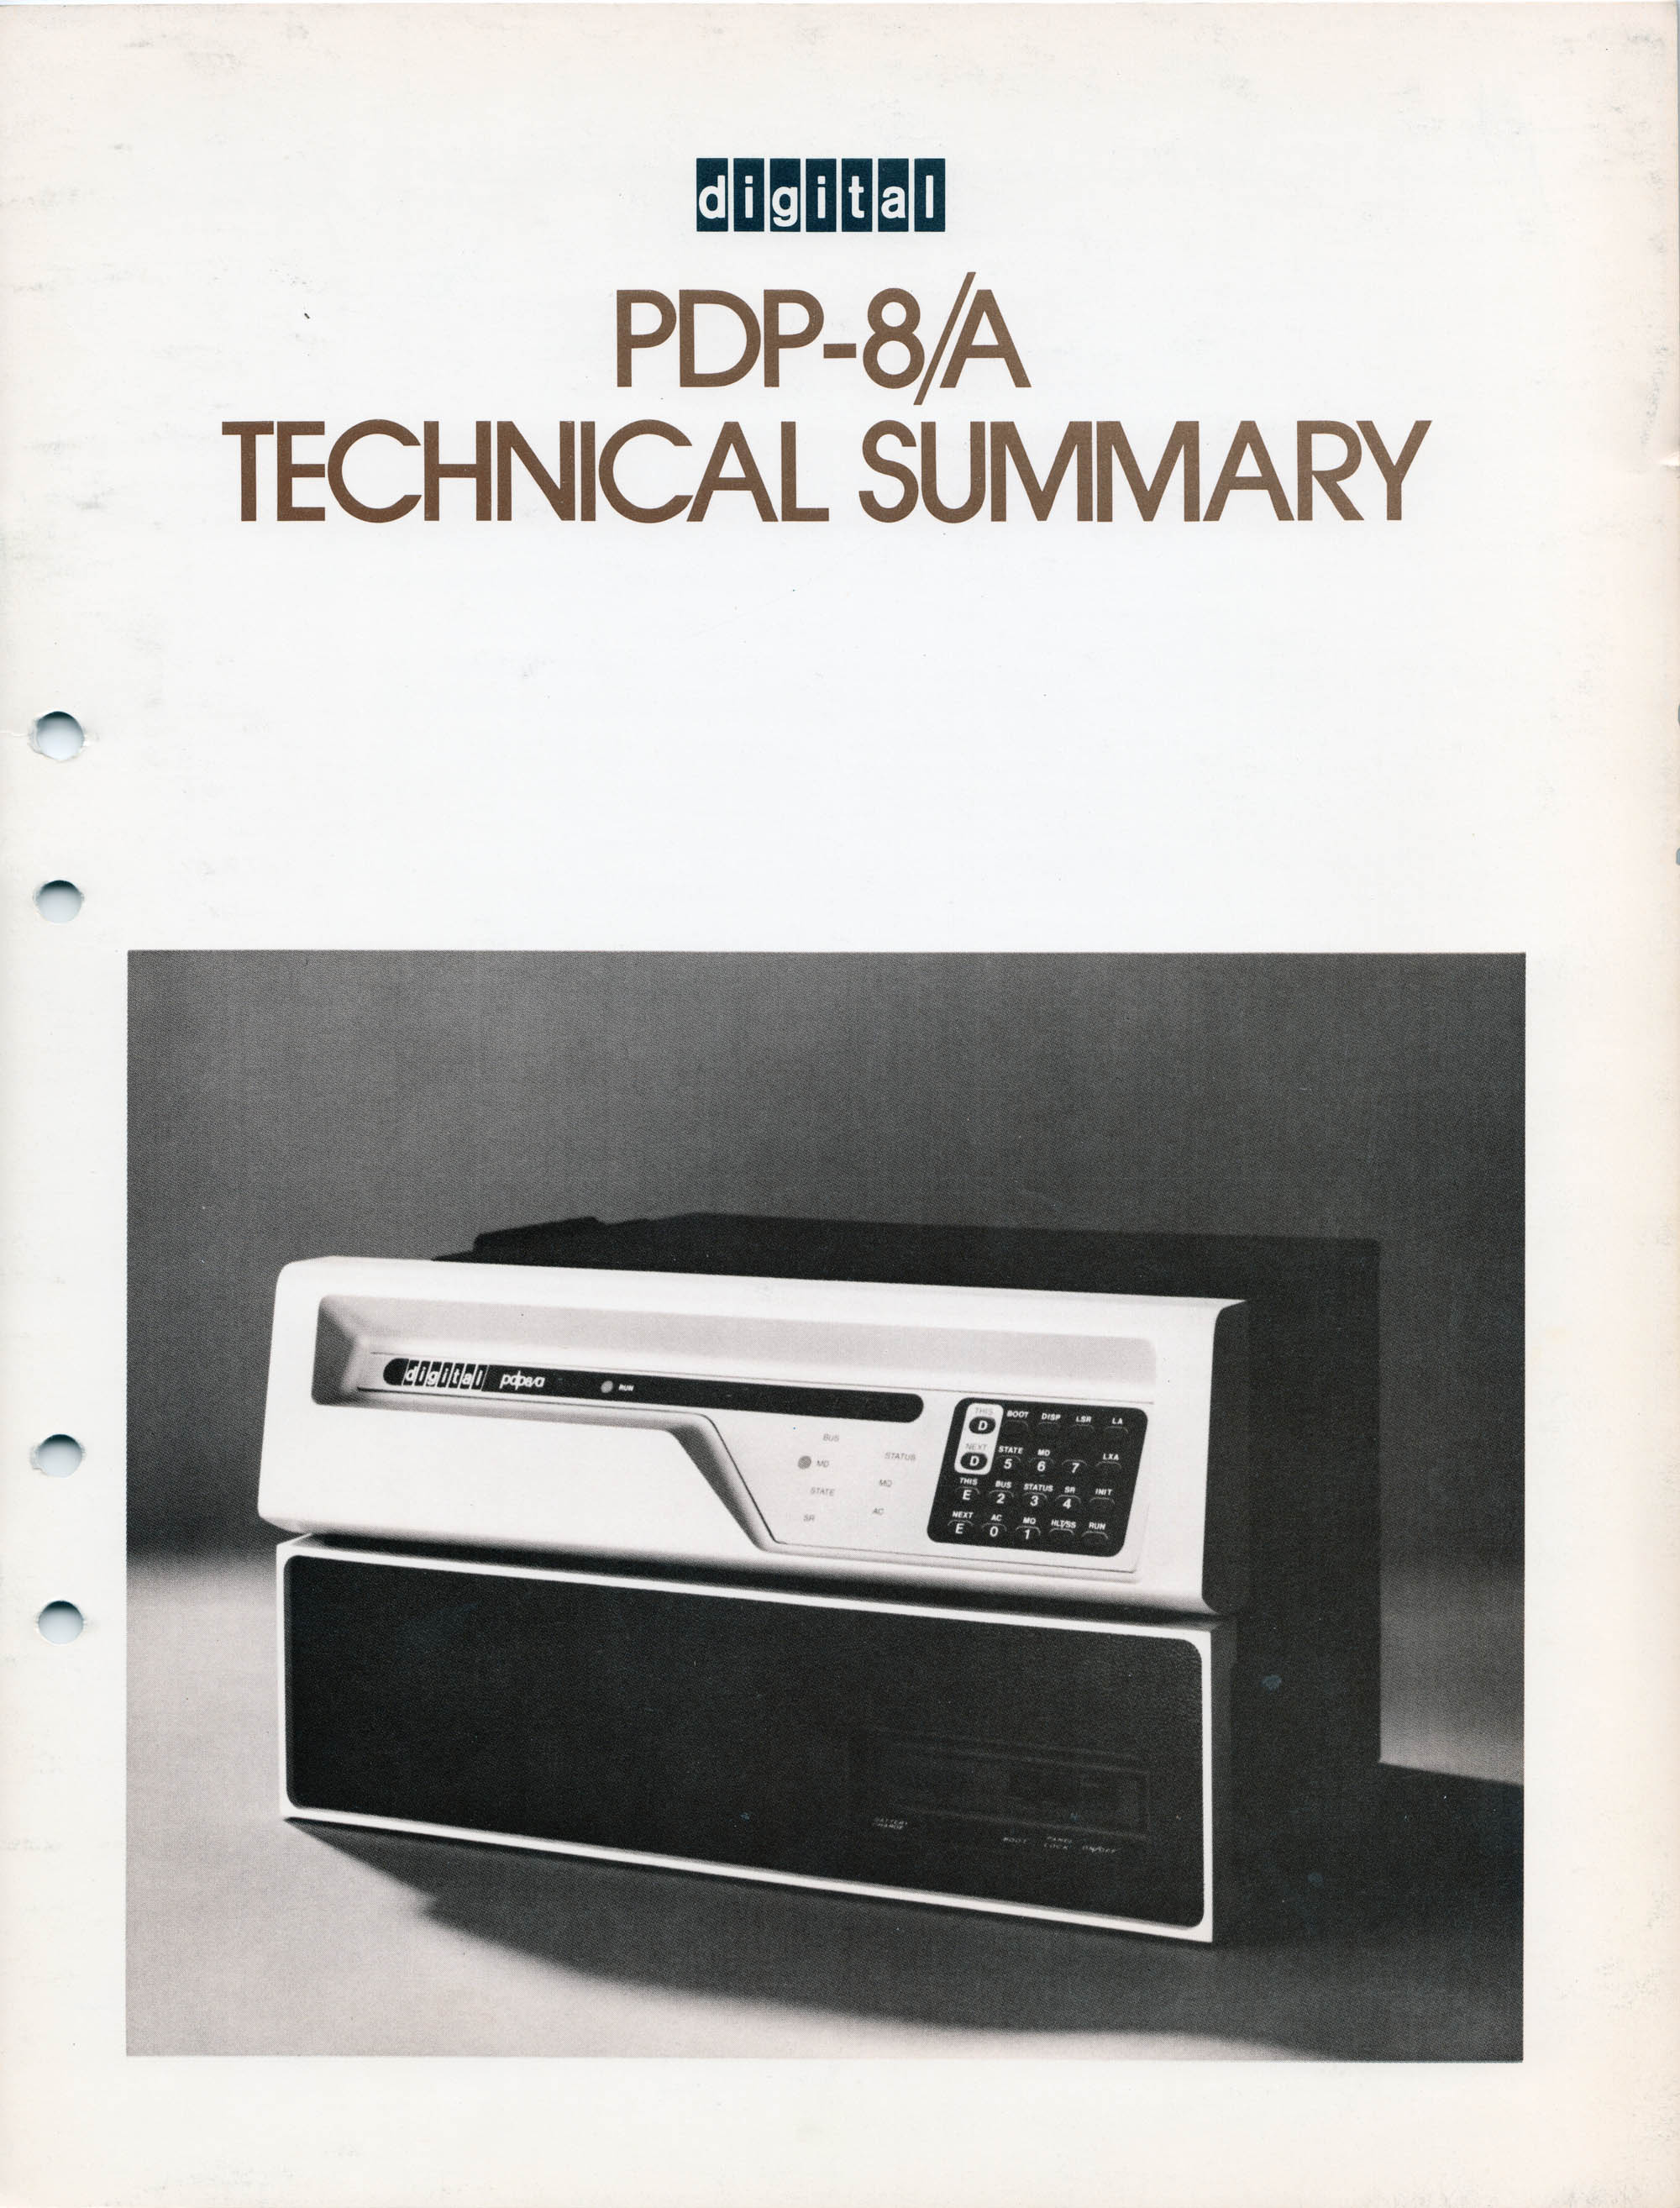 PDP-8/a Technical summary